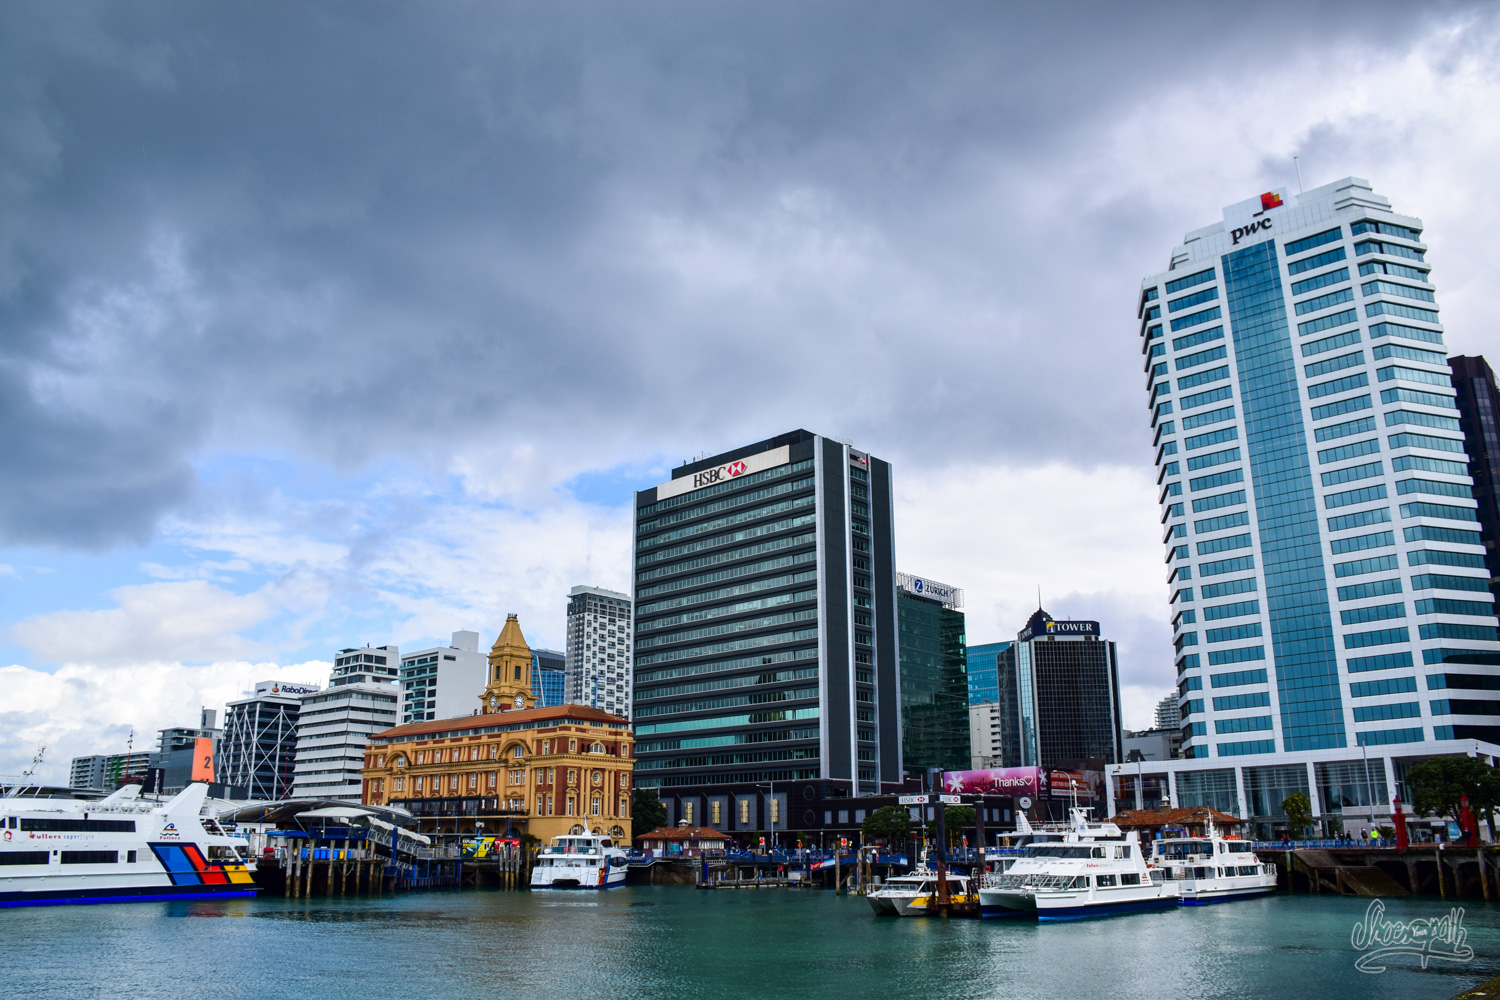 Auckland CBD view from the docks